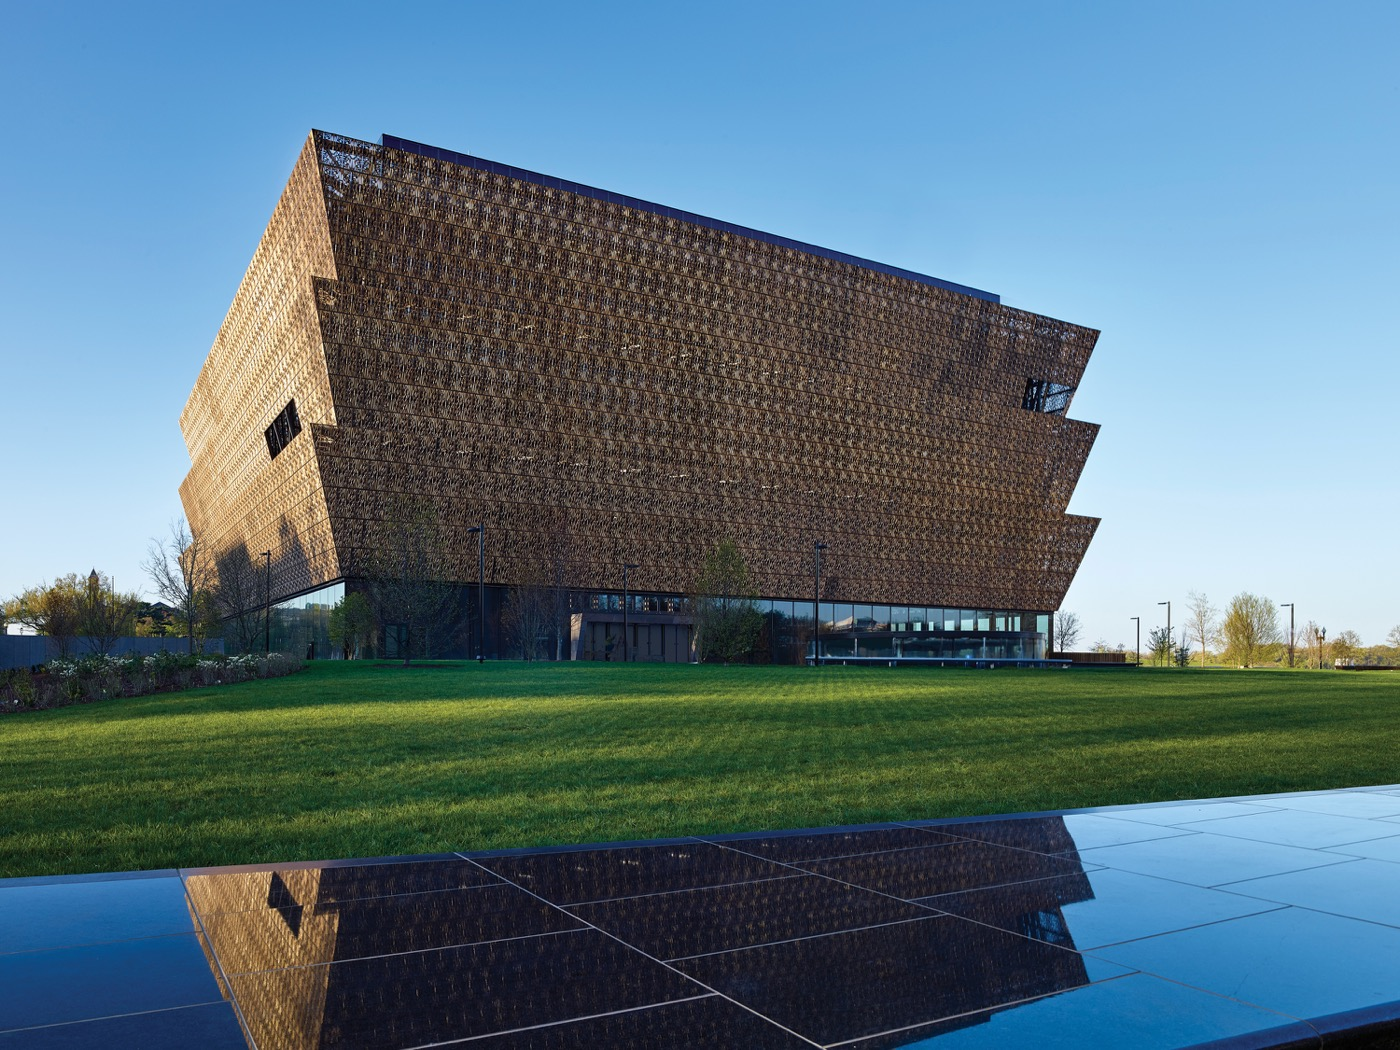 Noose found inside Smithsonian's African-American museum